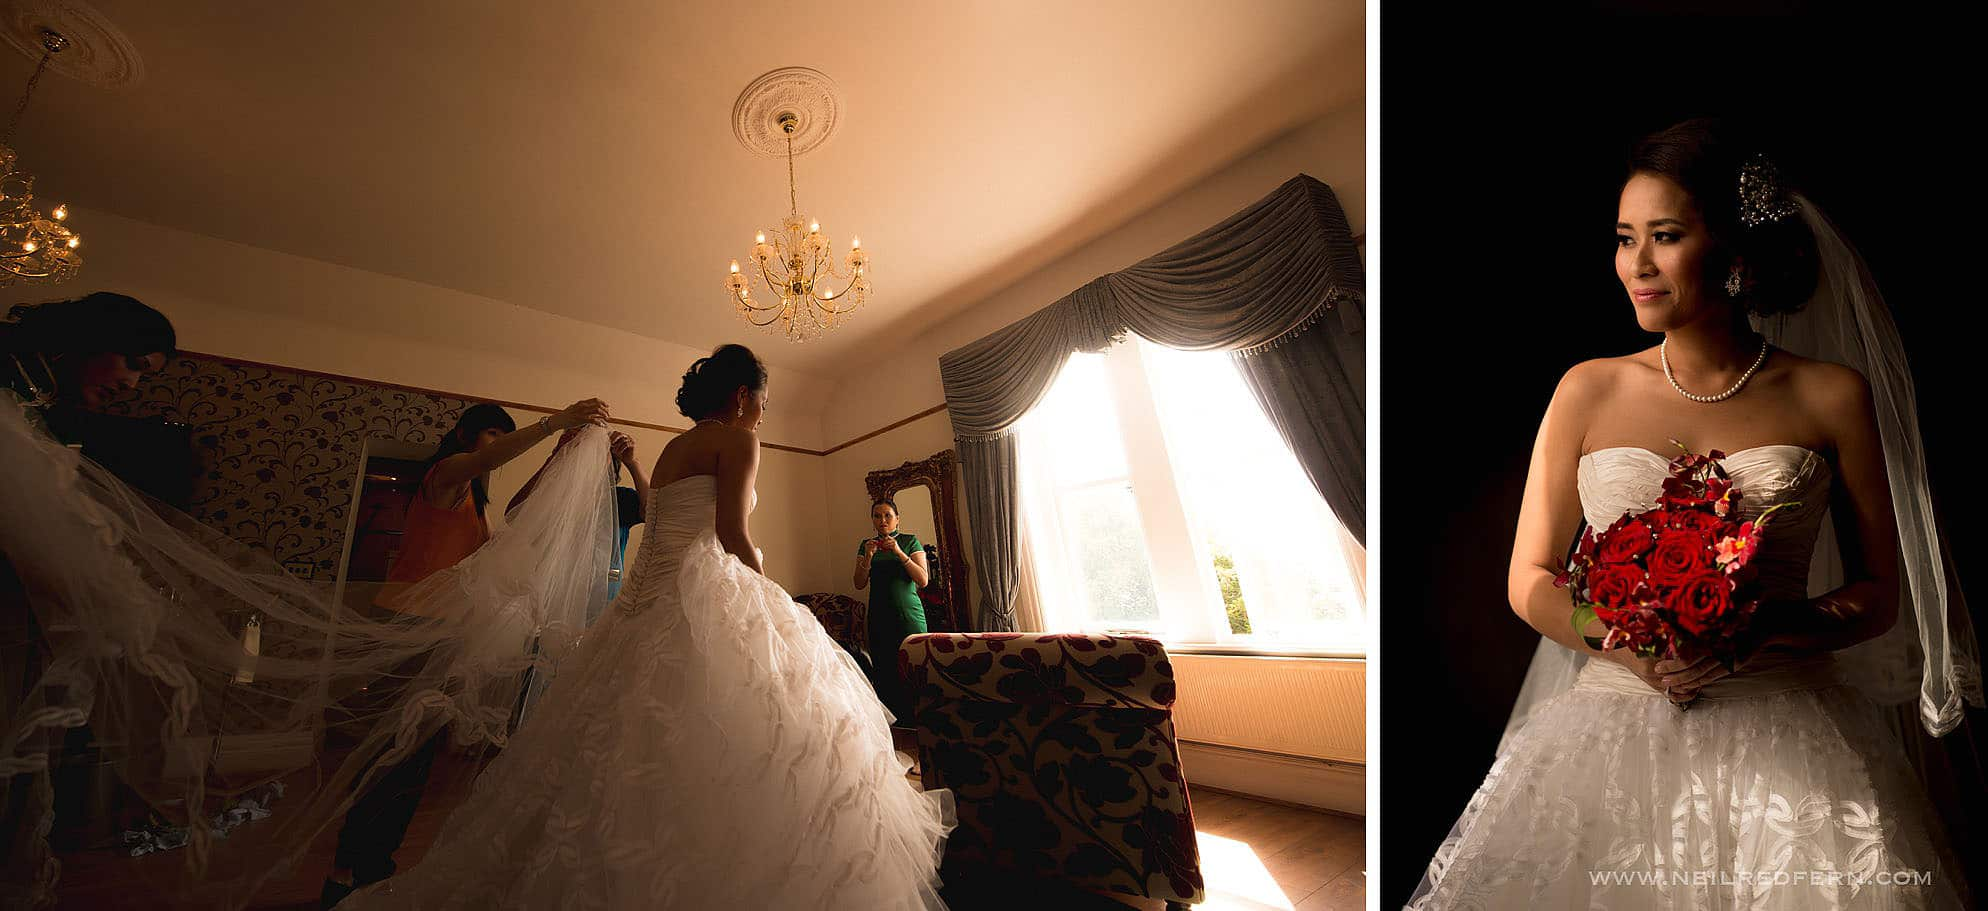 bride getting ready at West Tower in Lancashire